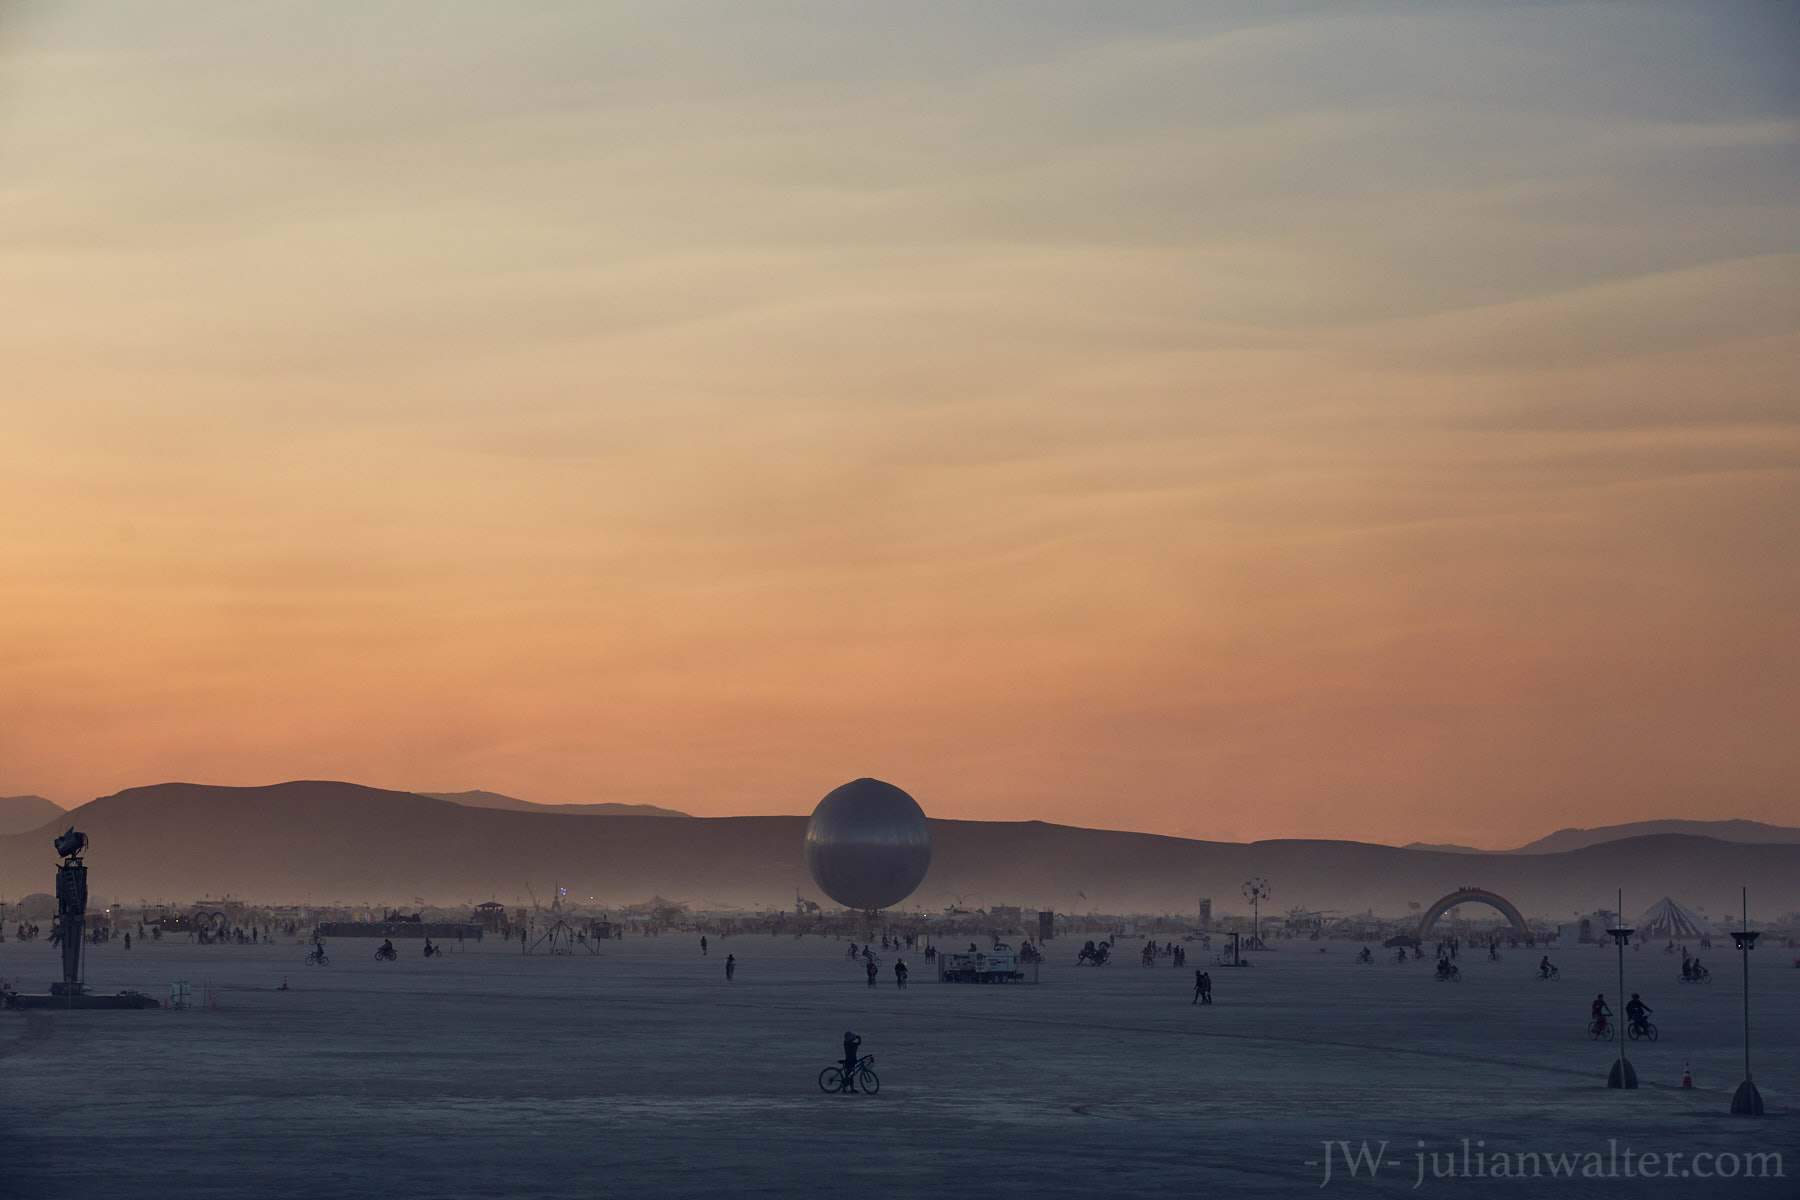 Burning Man 2018 - Julian Walter Photography